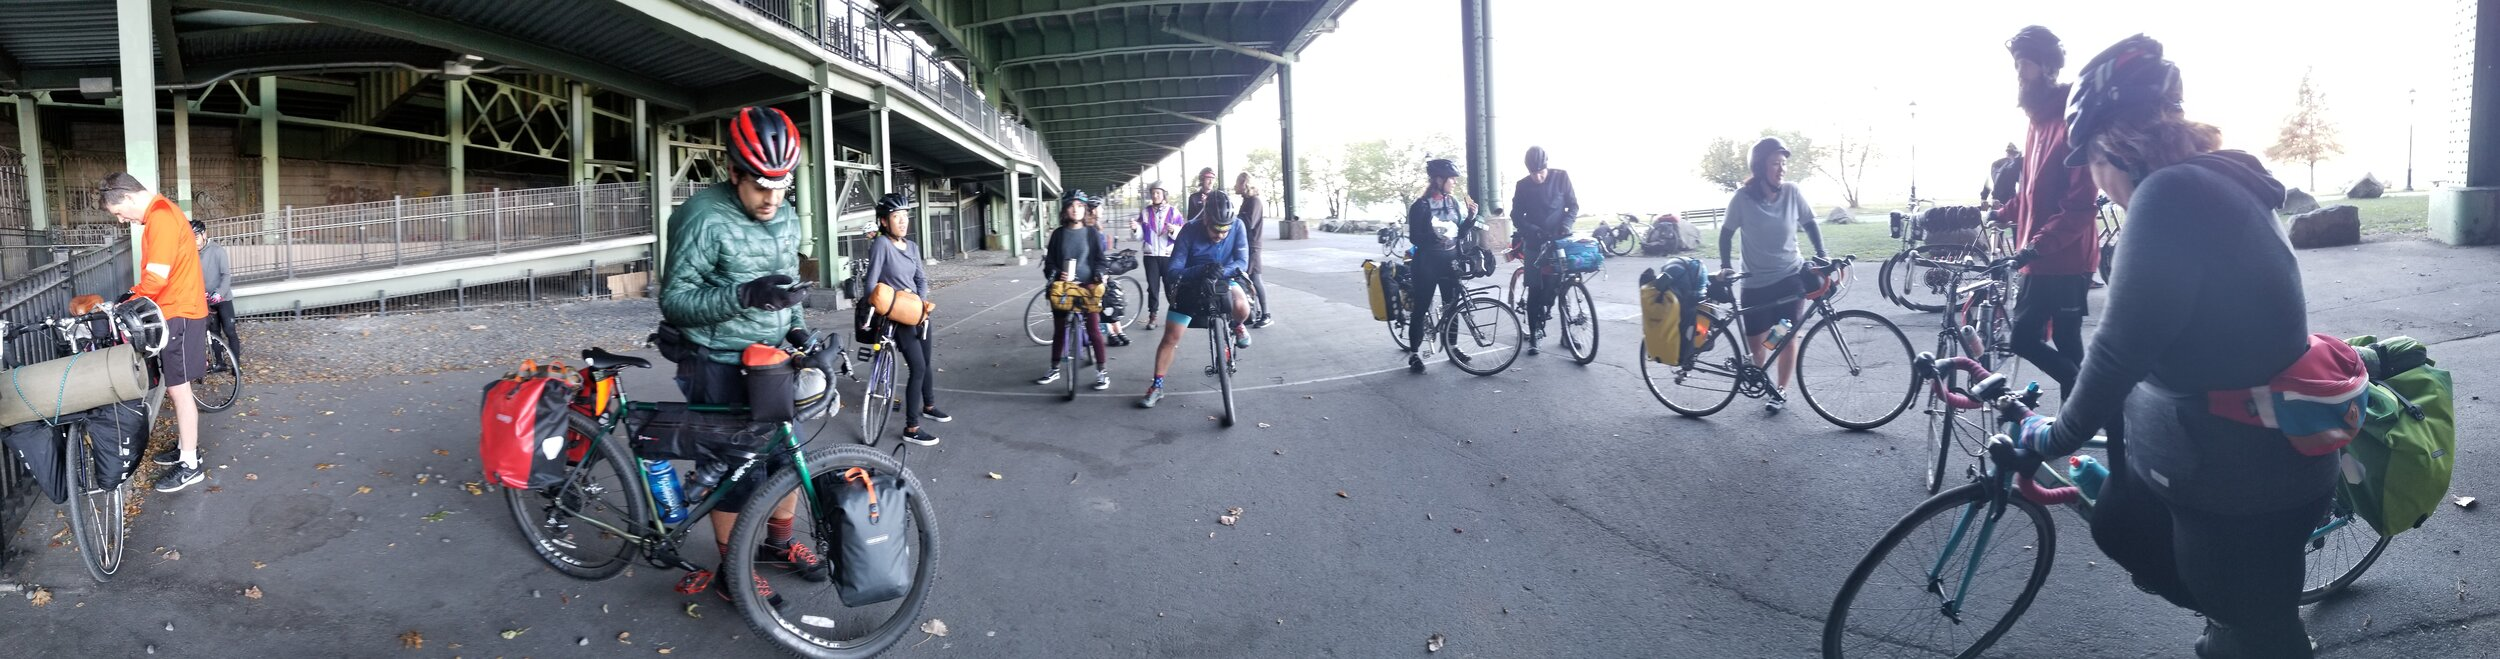 Gathering up the group off of the Hudson River Greenway to head up the pedestrian ramps at 158th Street